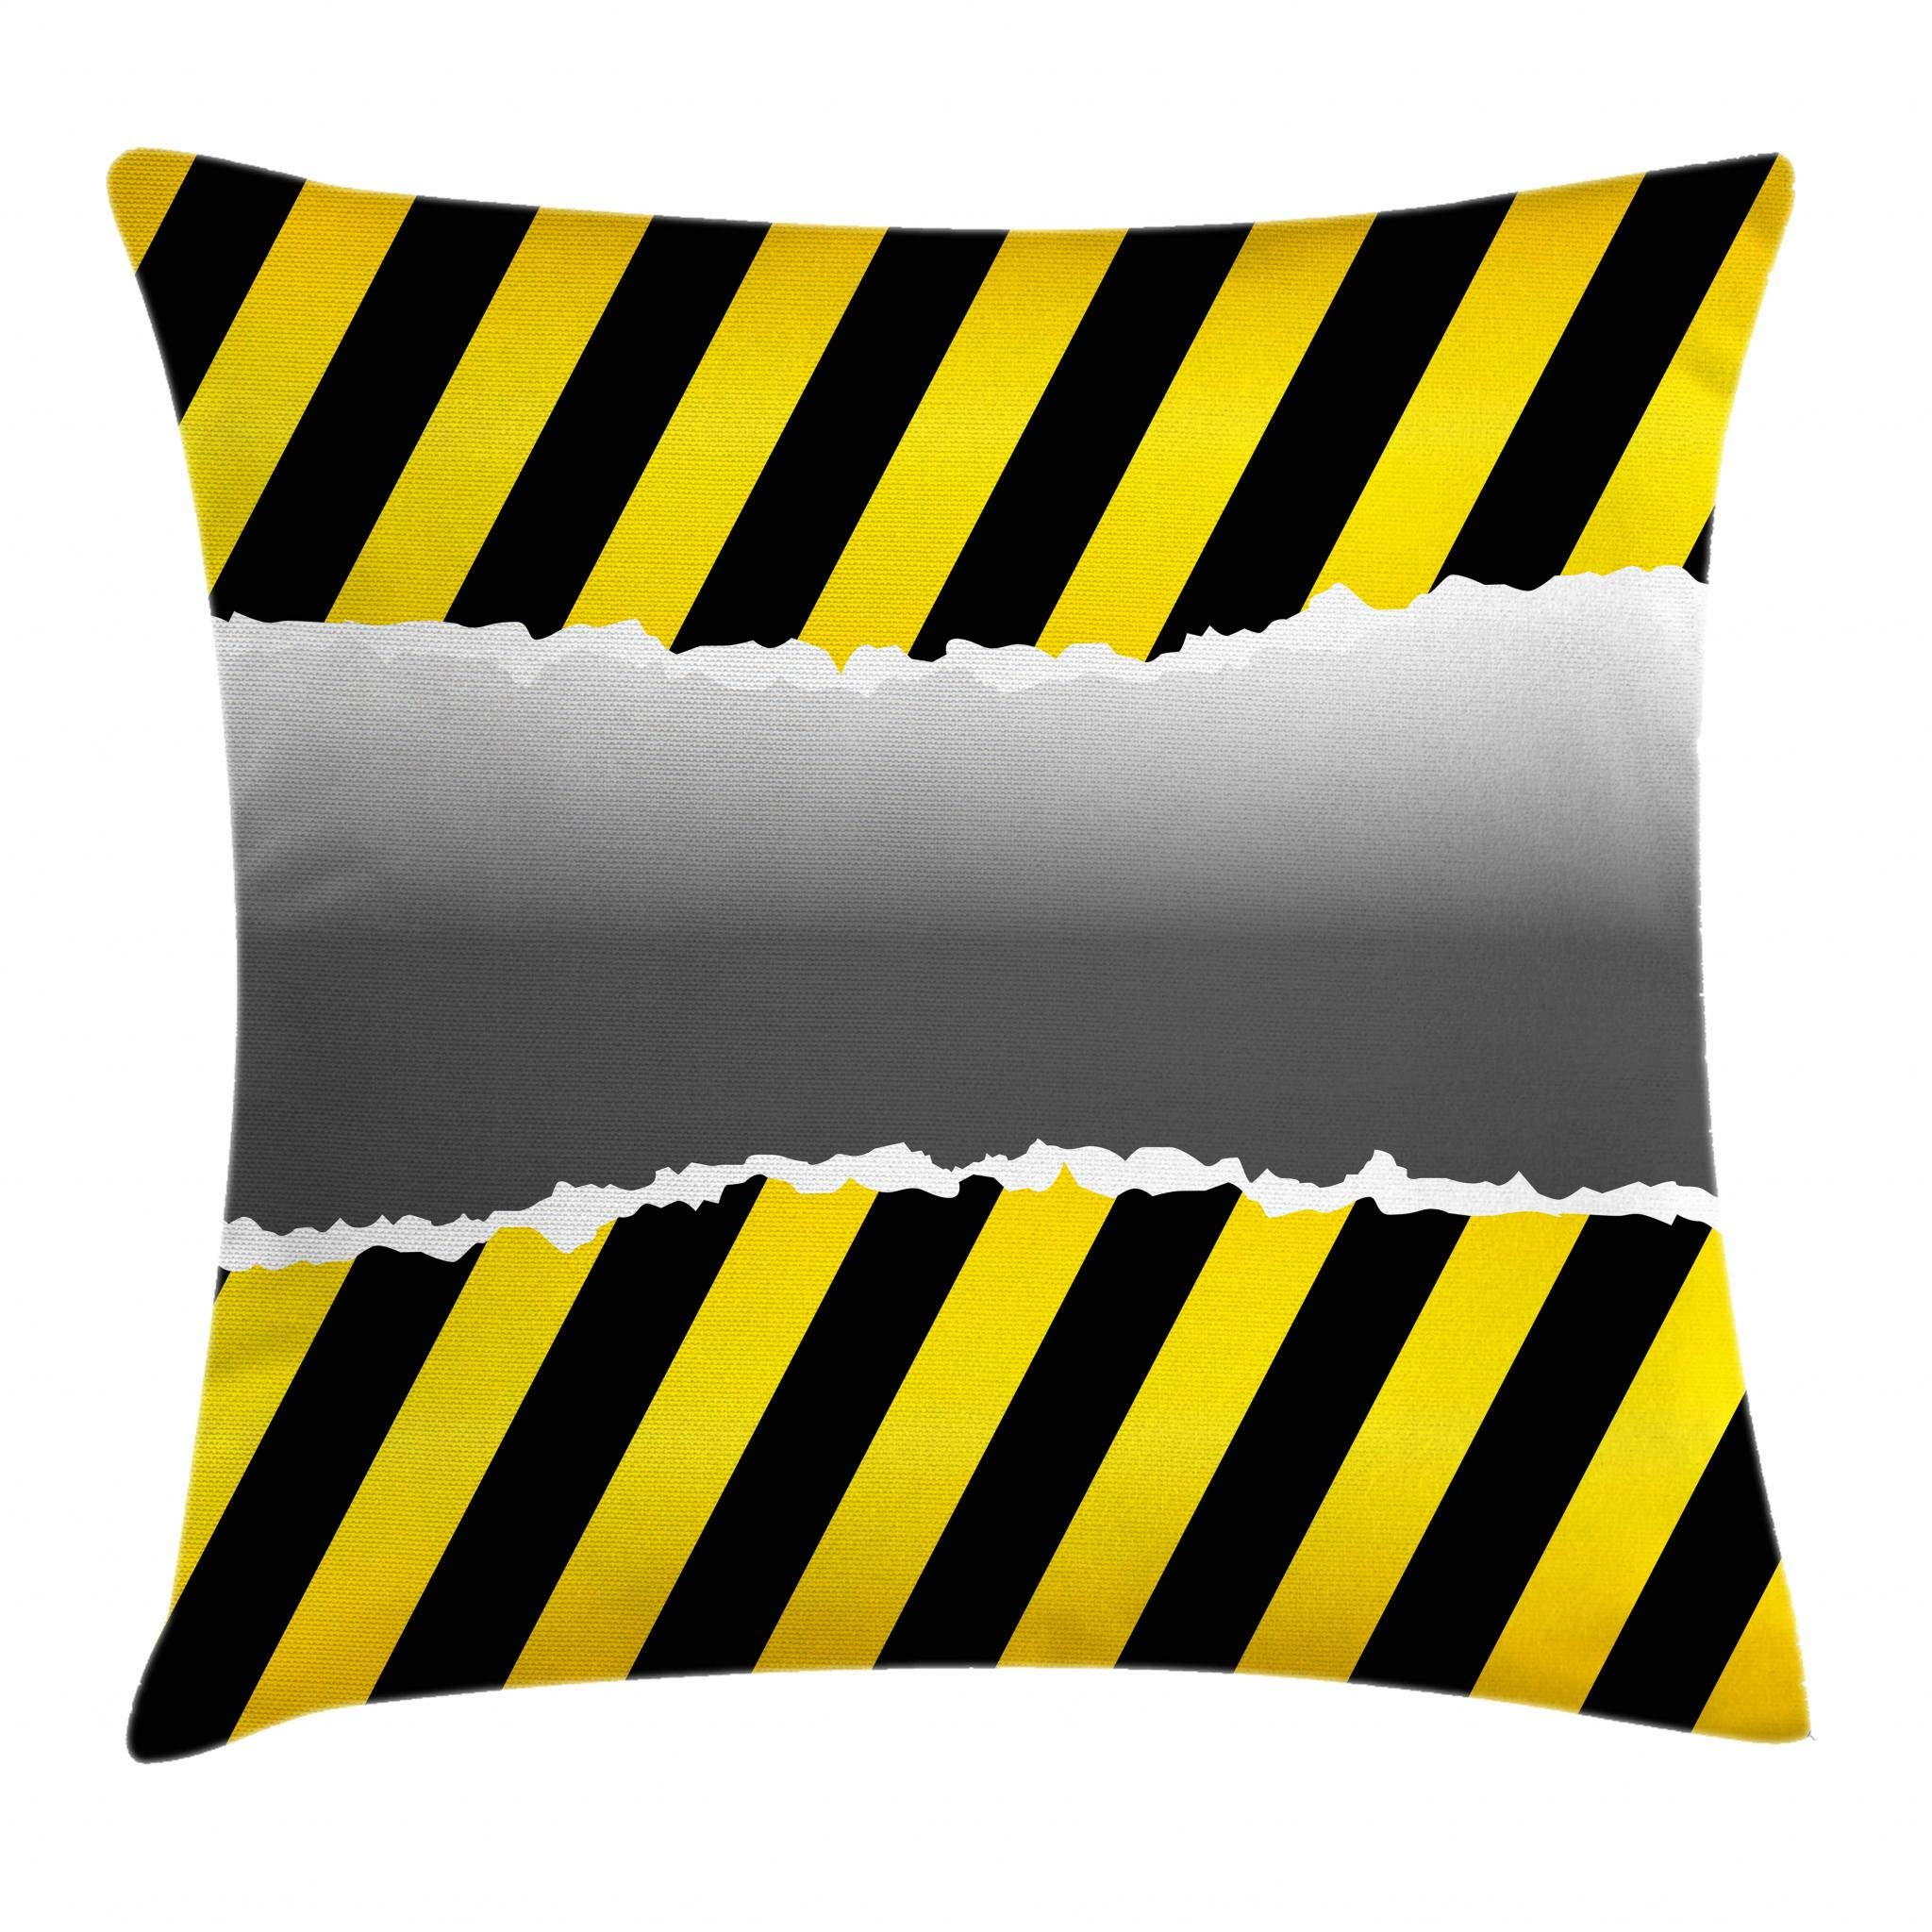 Ambesonne Construction Throw Pillow Cushion Cover, Ripped Sign Working Site Danger Hazard Progress Caution Urban Pattern, Decorative Square Accent Pillow Case, 16 X 16 Inches, Yellow Black Grey